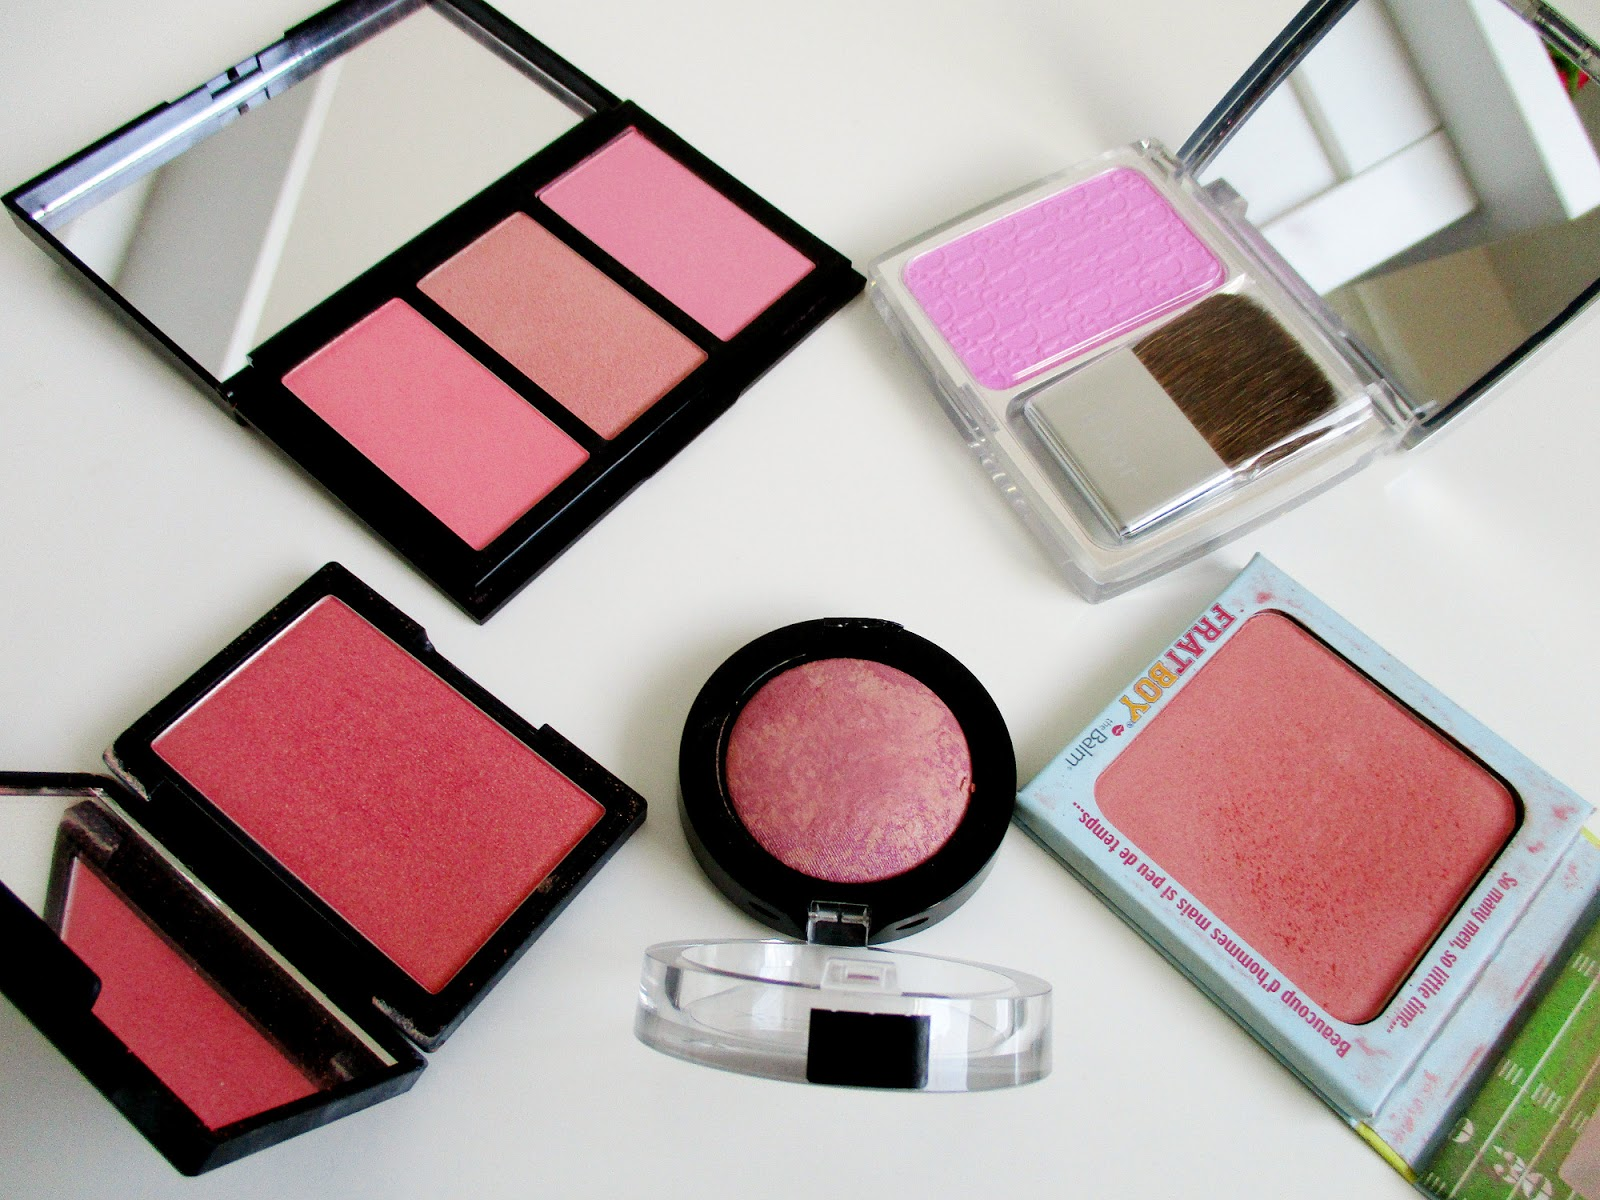 My Top Blush Picks For Spring/Summer